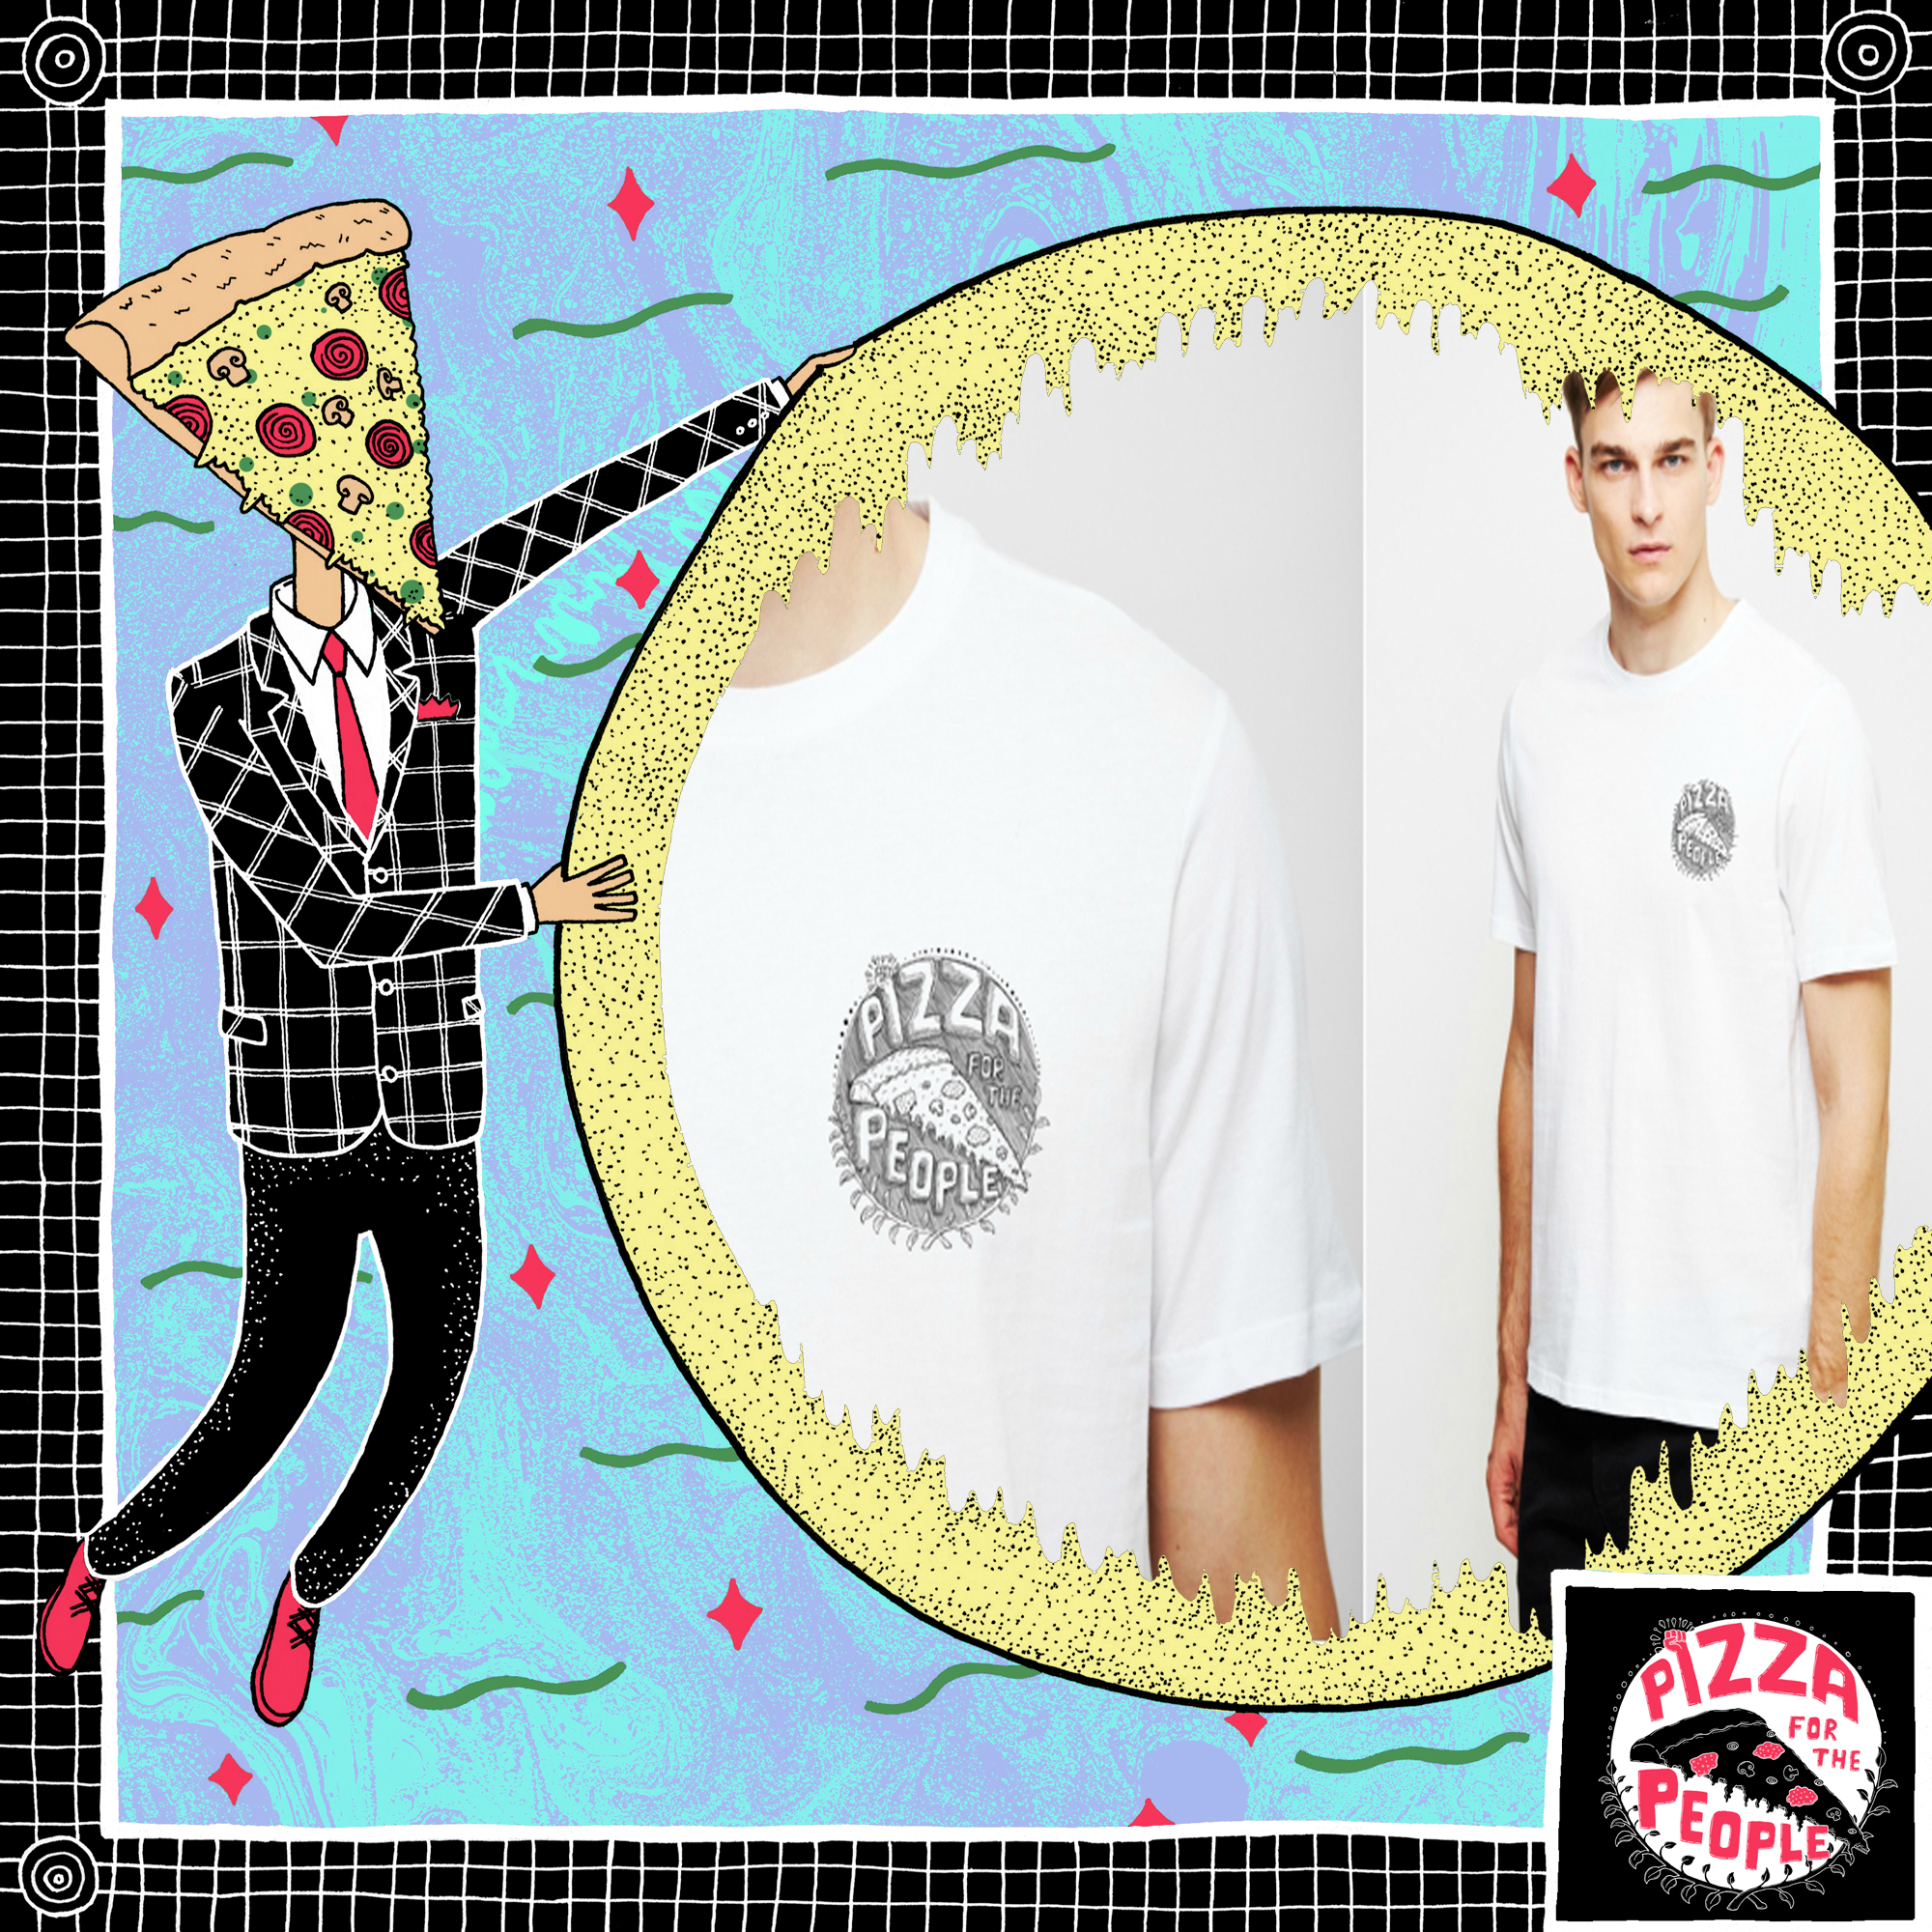 PFTP Logo Tee (SOLD OUT) - Pizza For The People